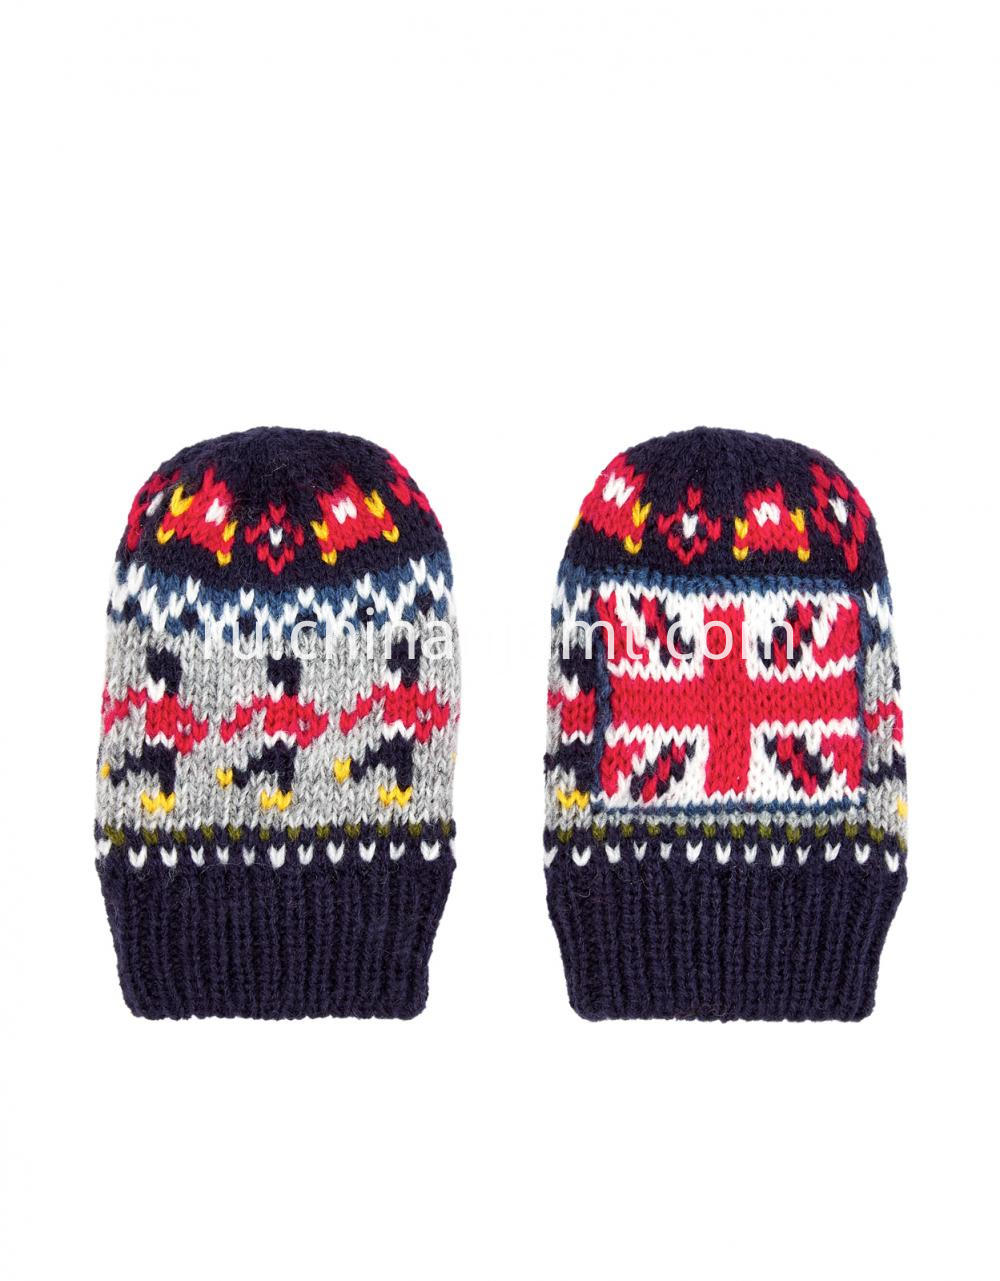 Baby Boy City Sights Mittens